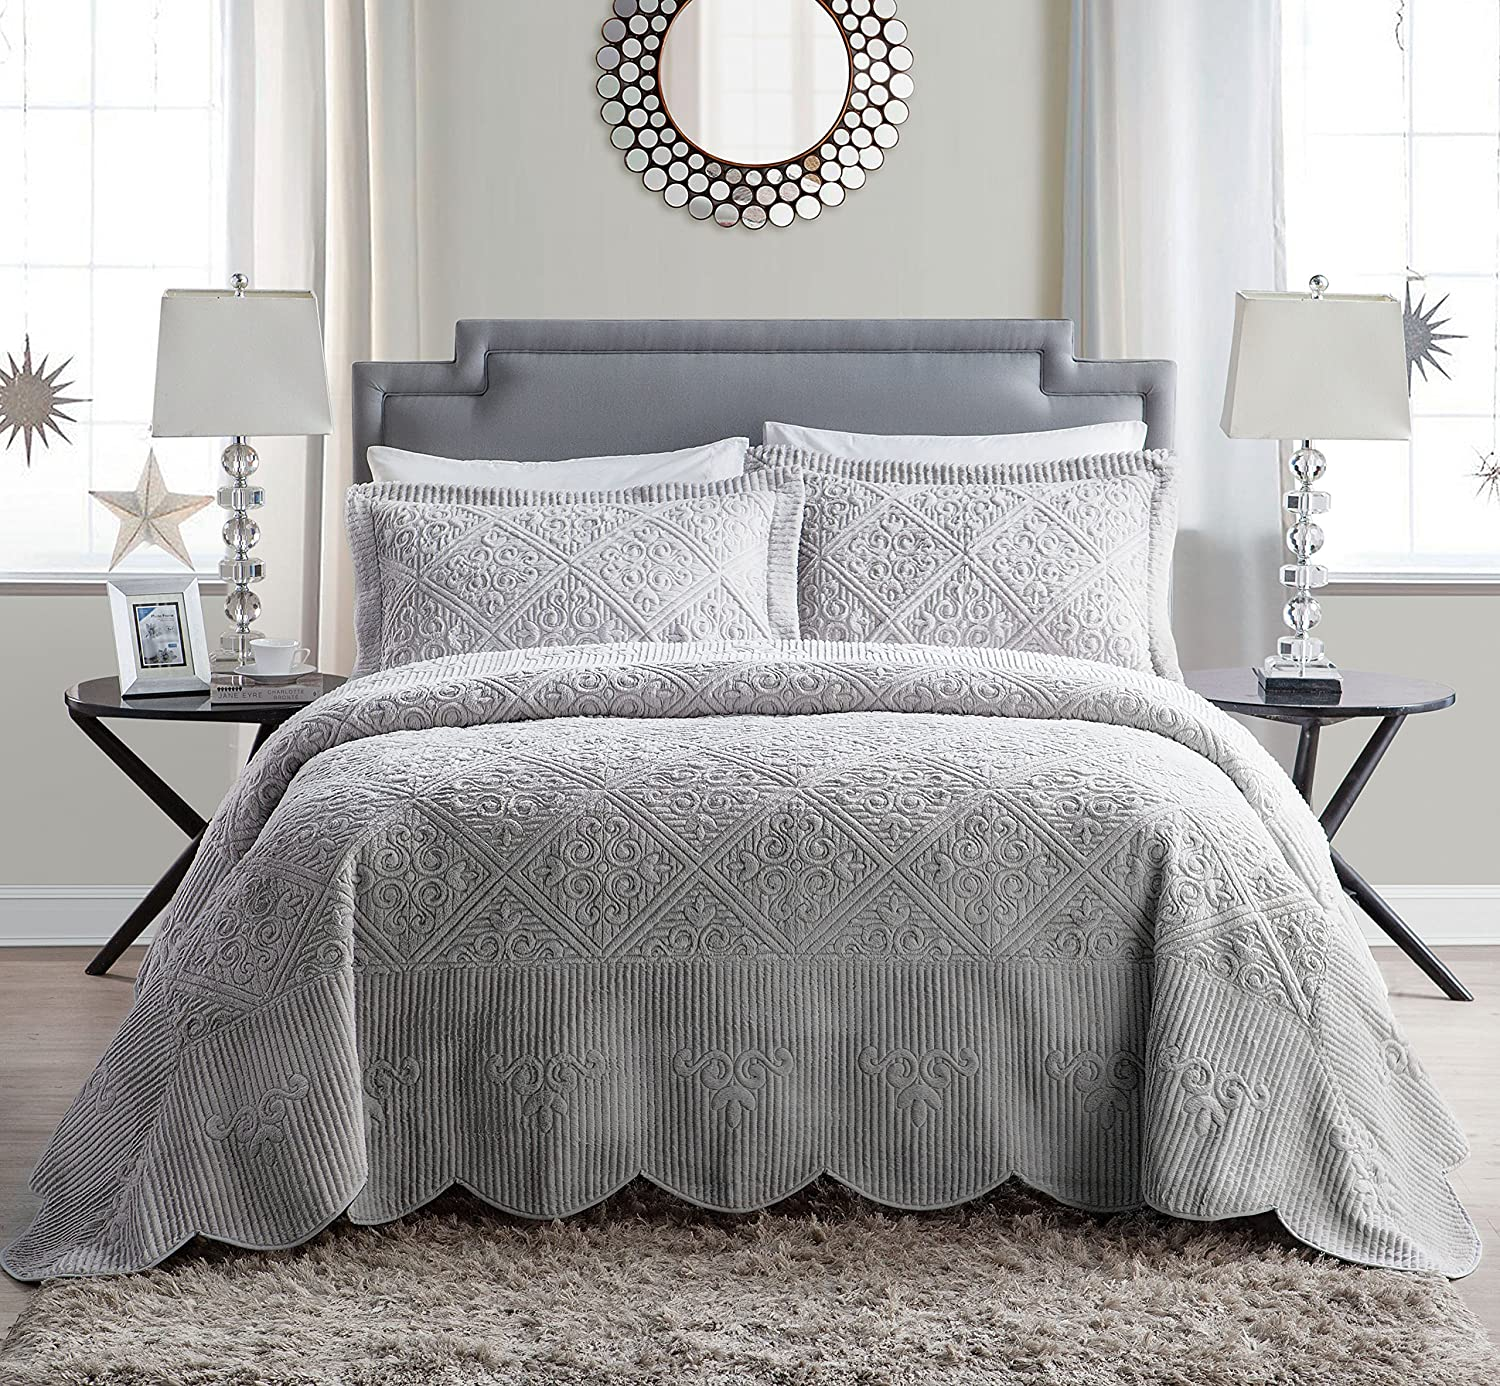 VCNY Home Westland Plush Quilted 3-Piece Bedspread Set, Queen, Grey